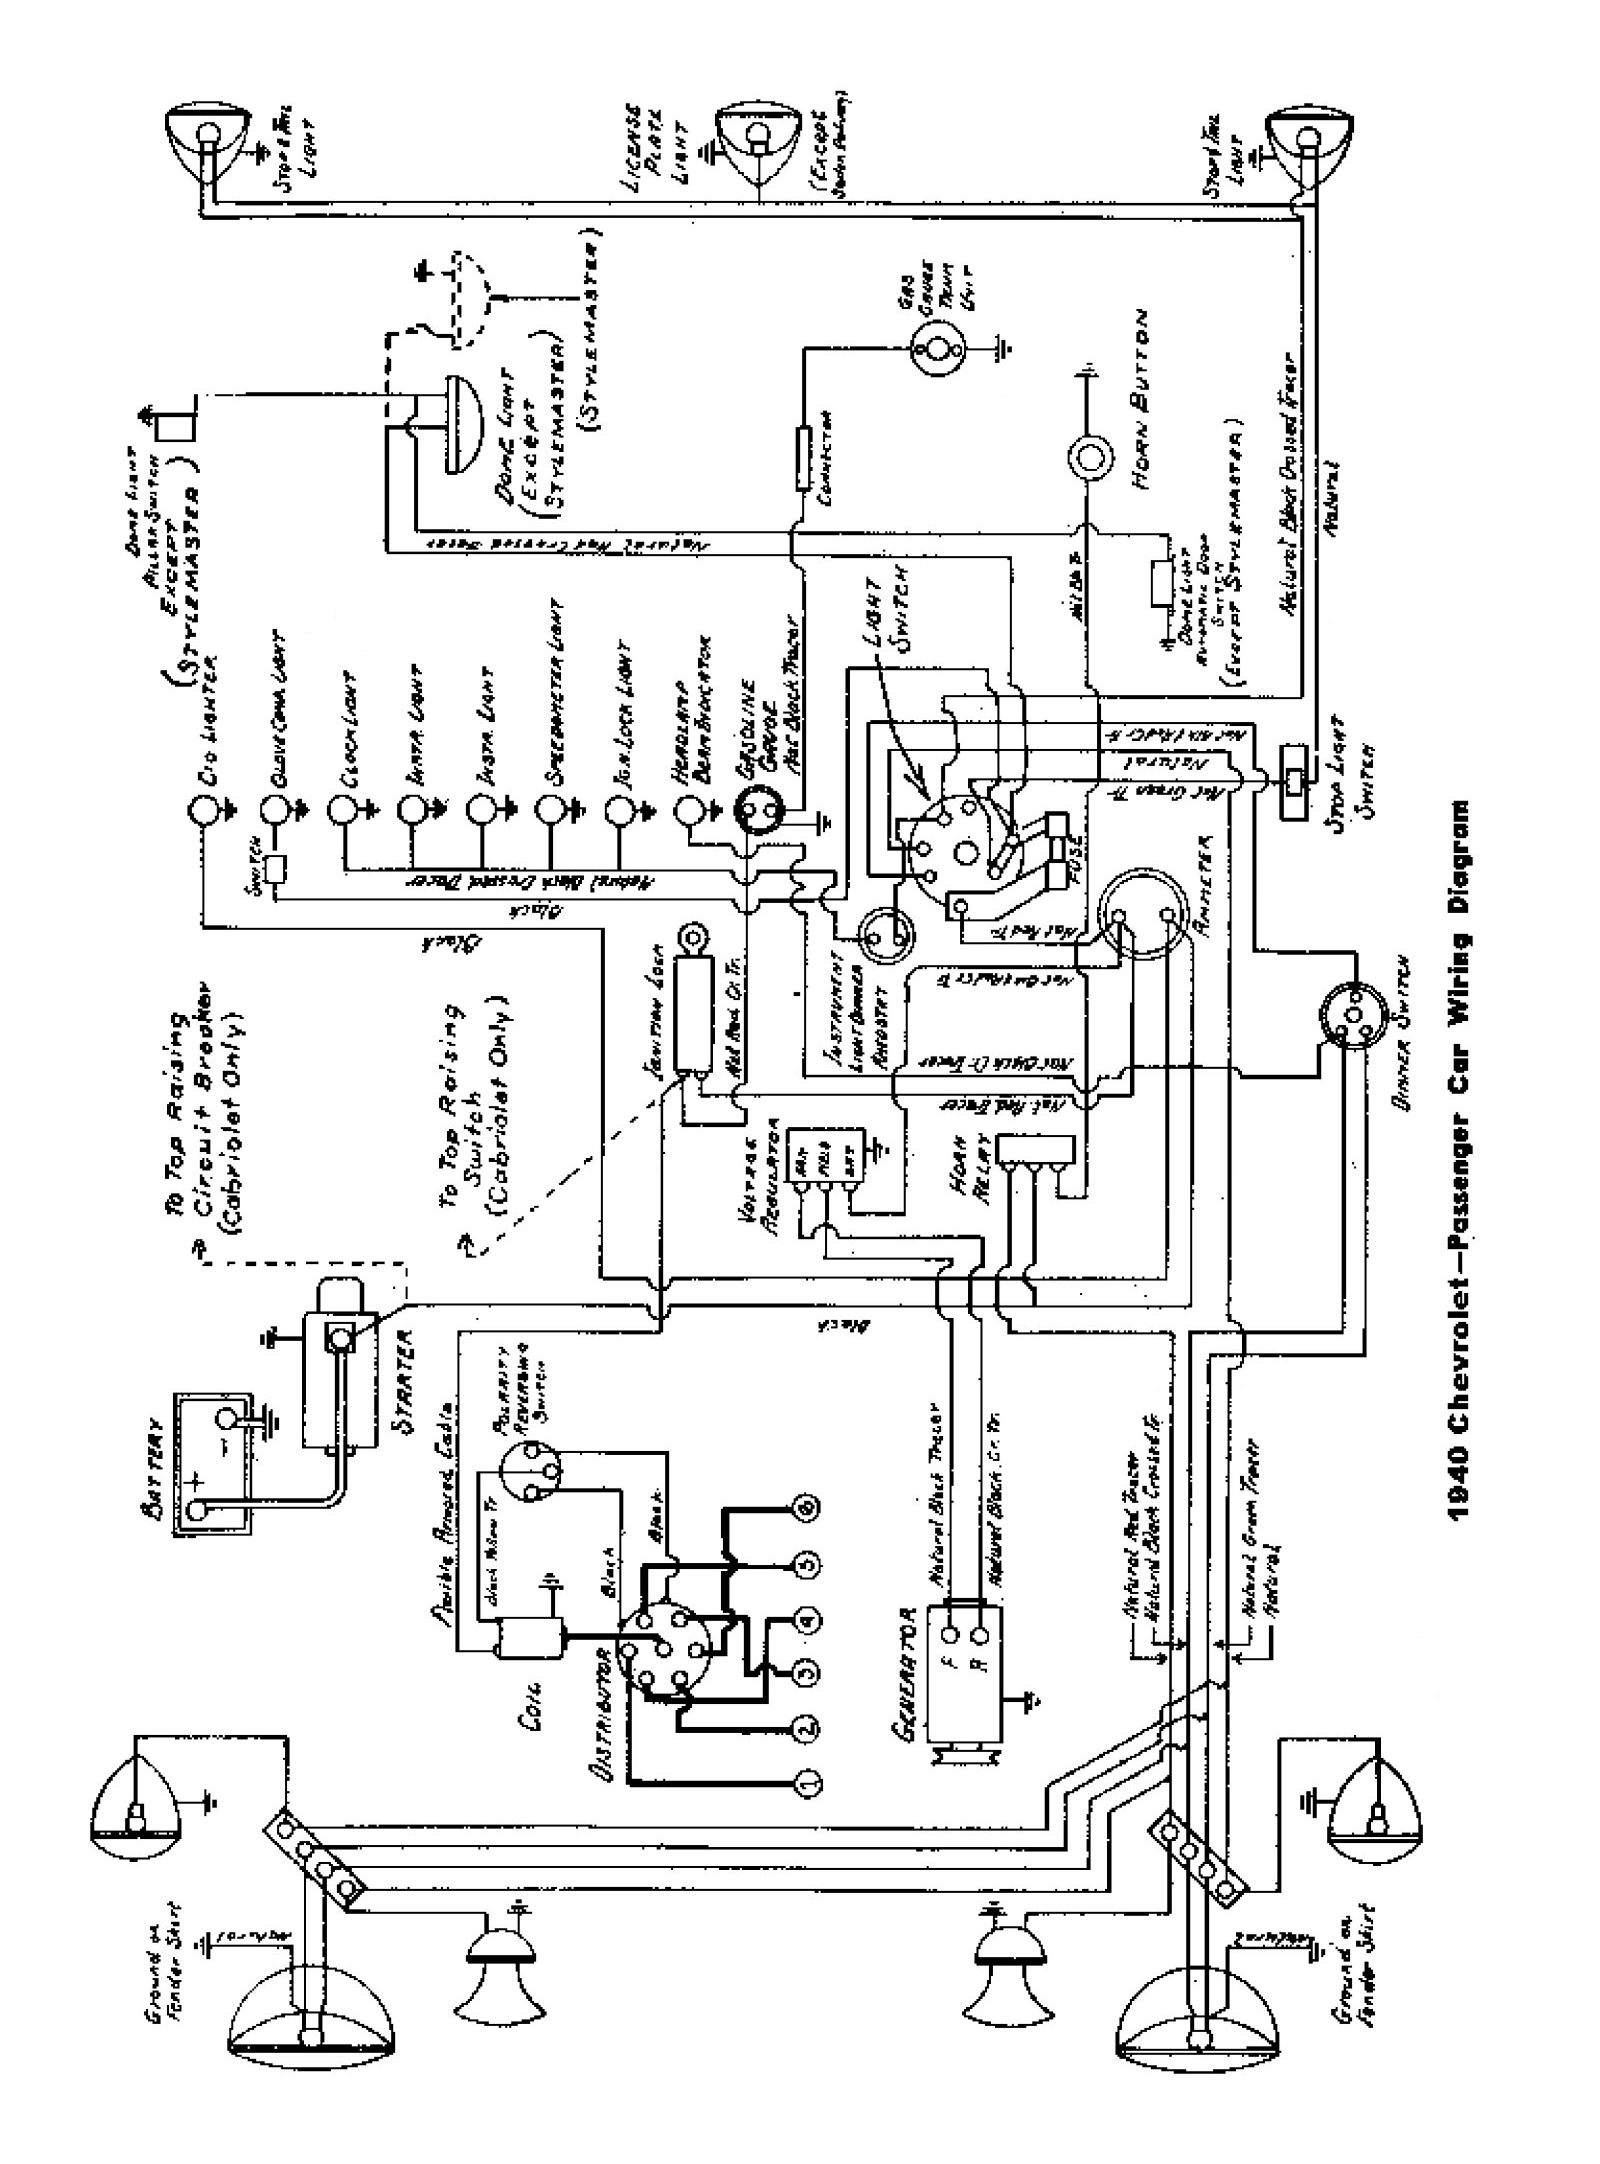 40car chevy wiring diagrams free wiring diagram for 2006 chevy silverado at fashall.co